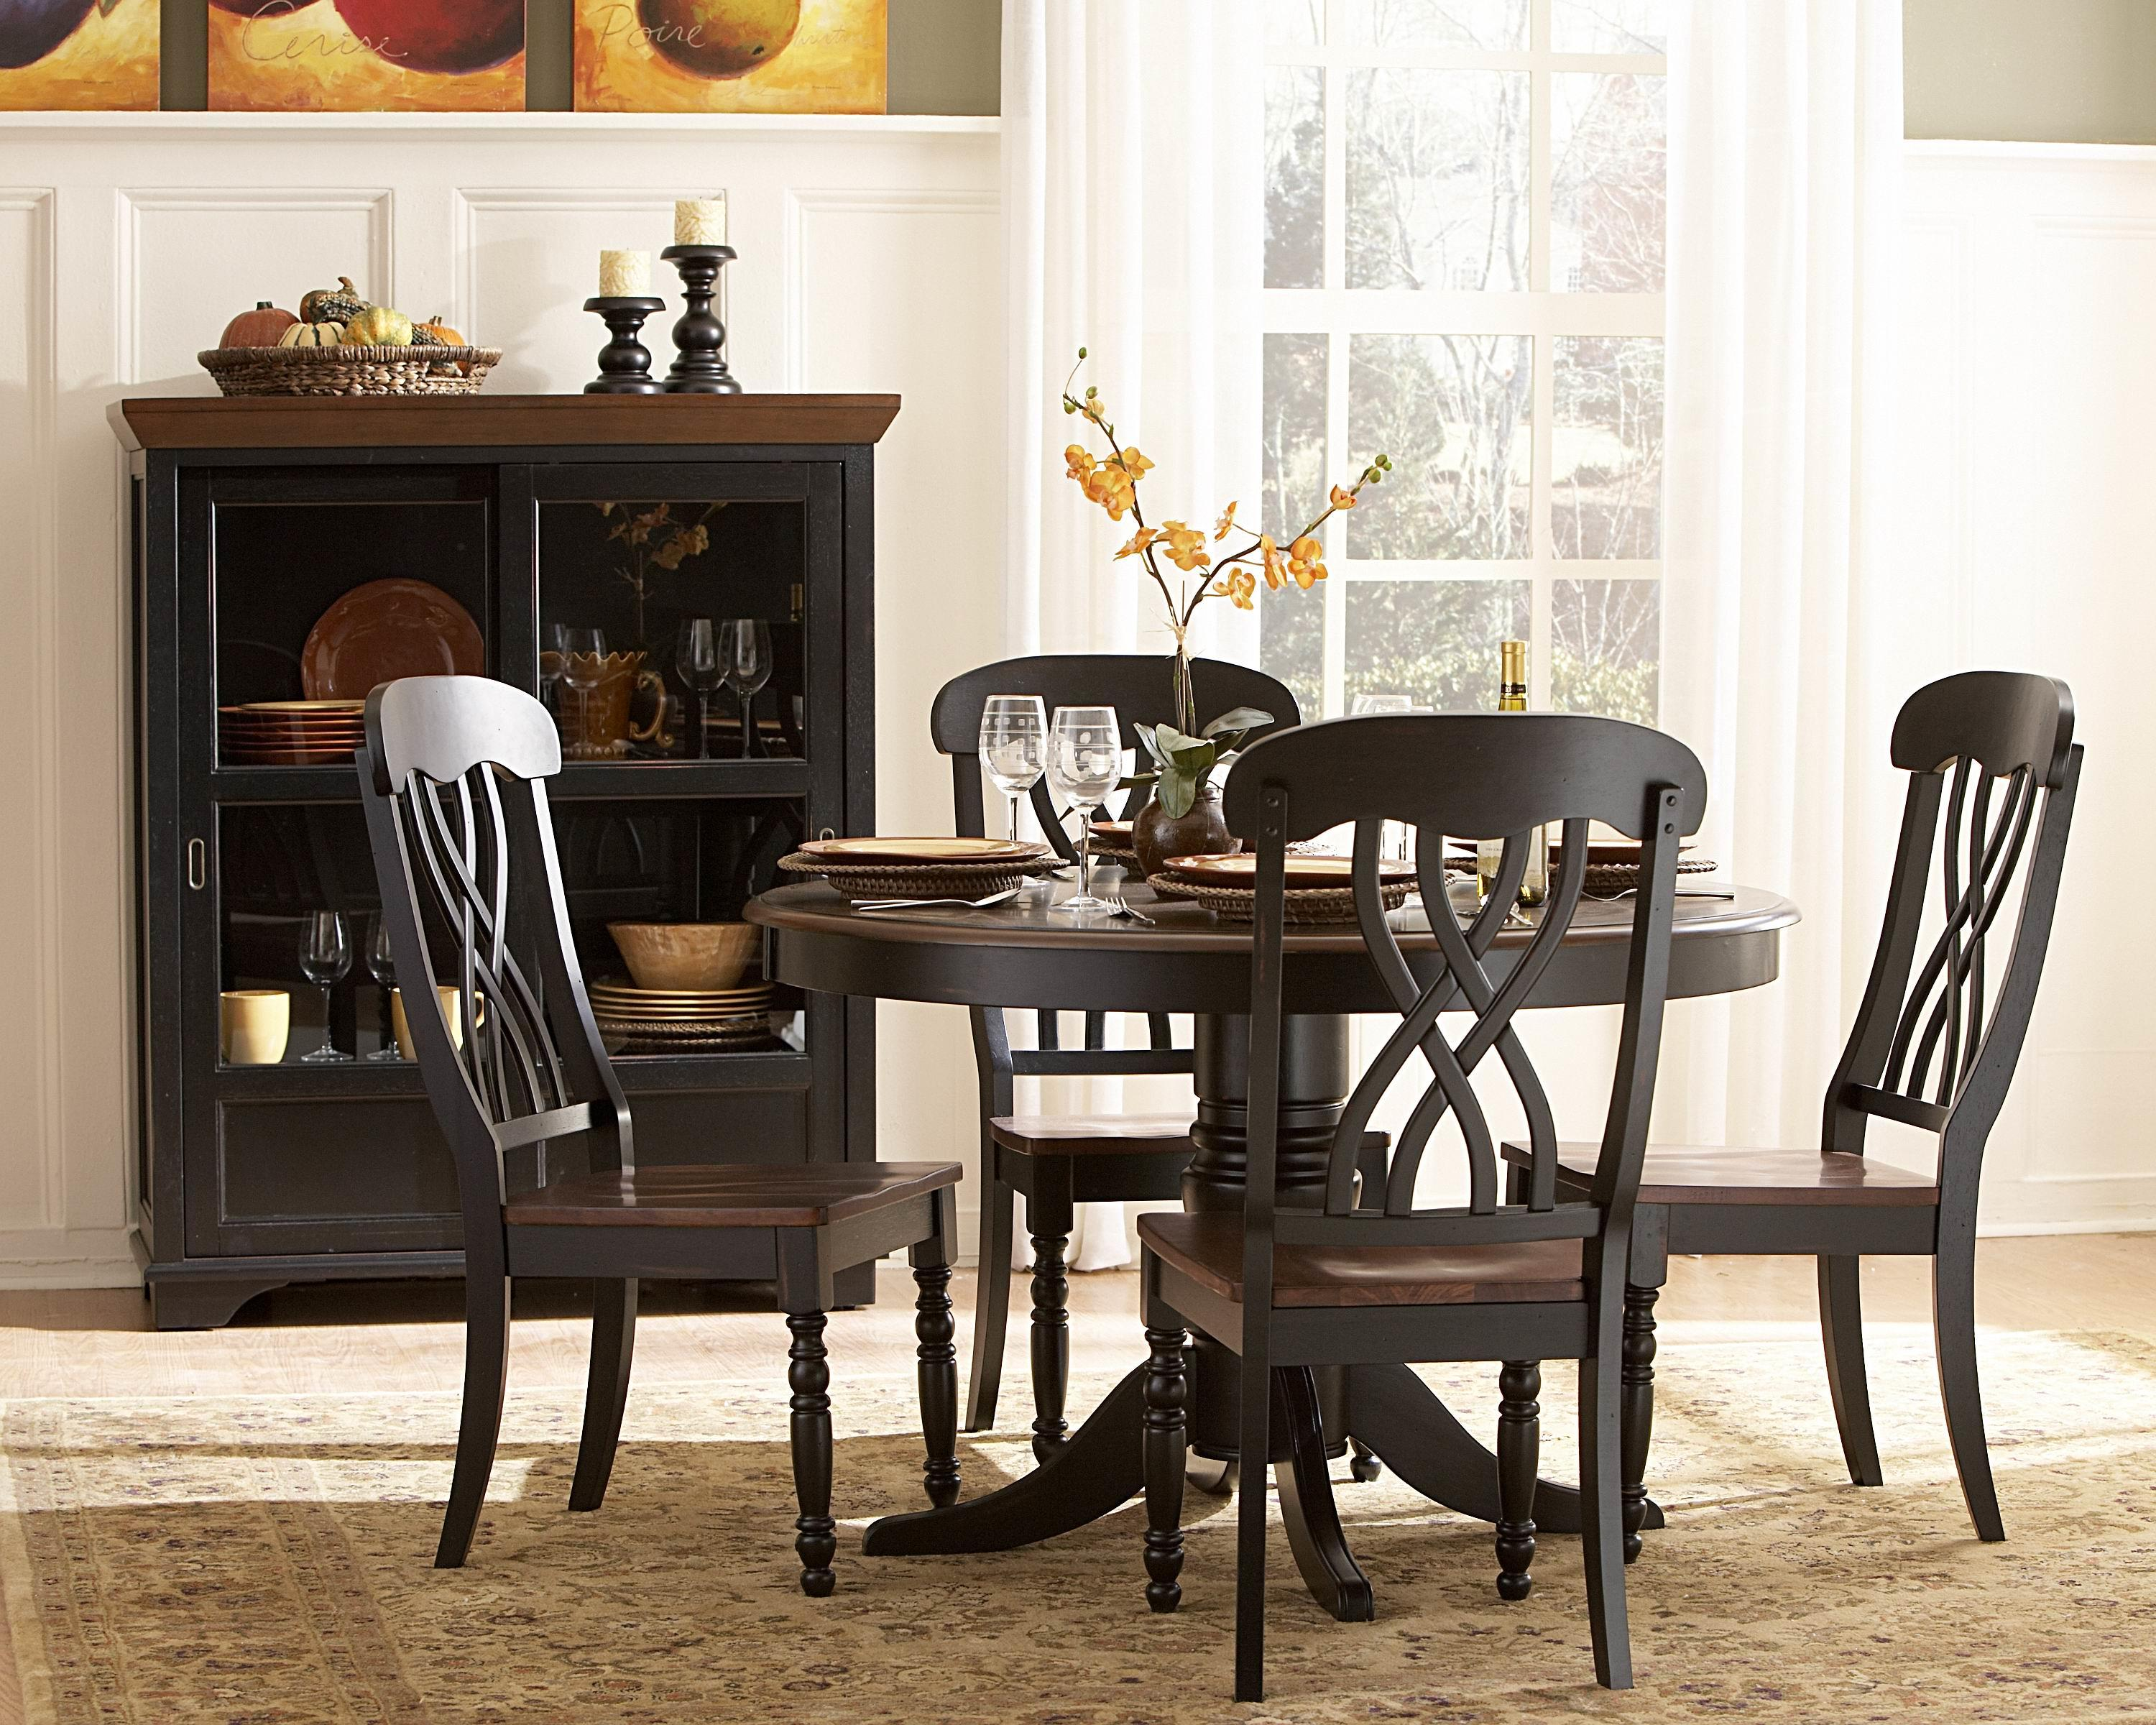 Round kitchen table and chairs Photo - 8